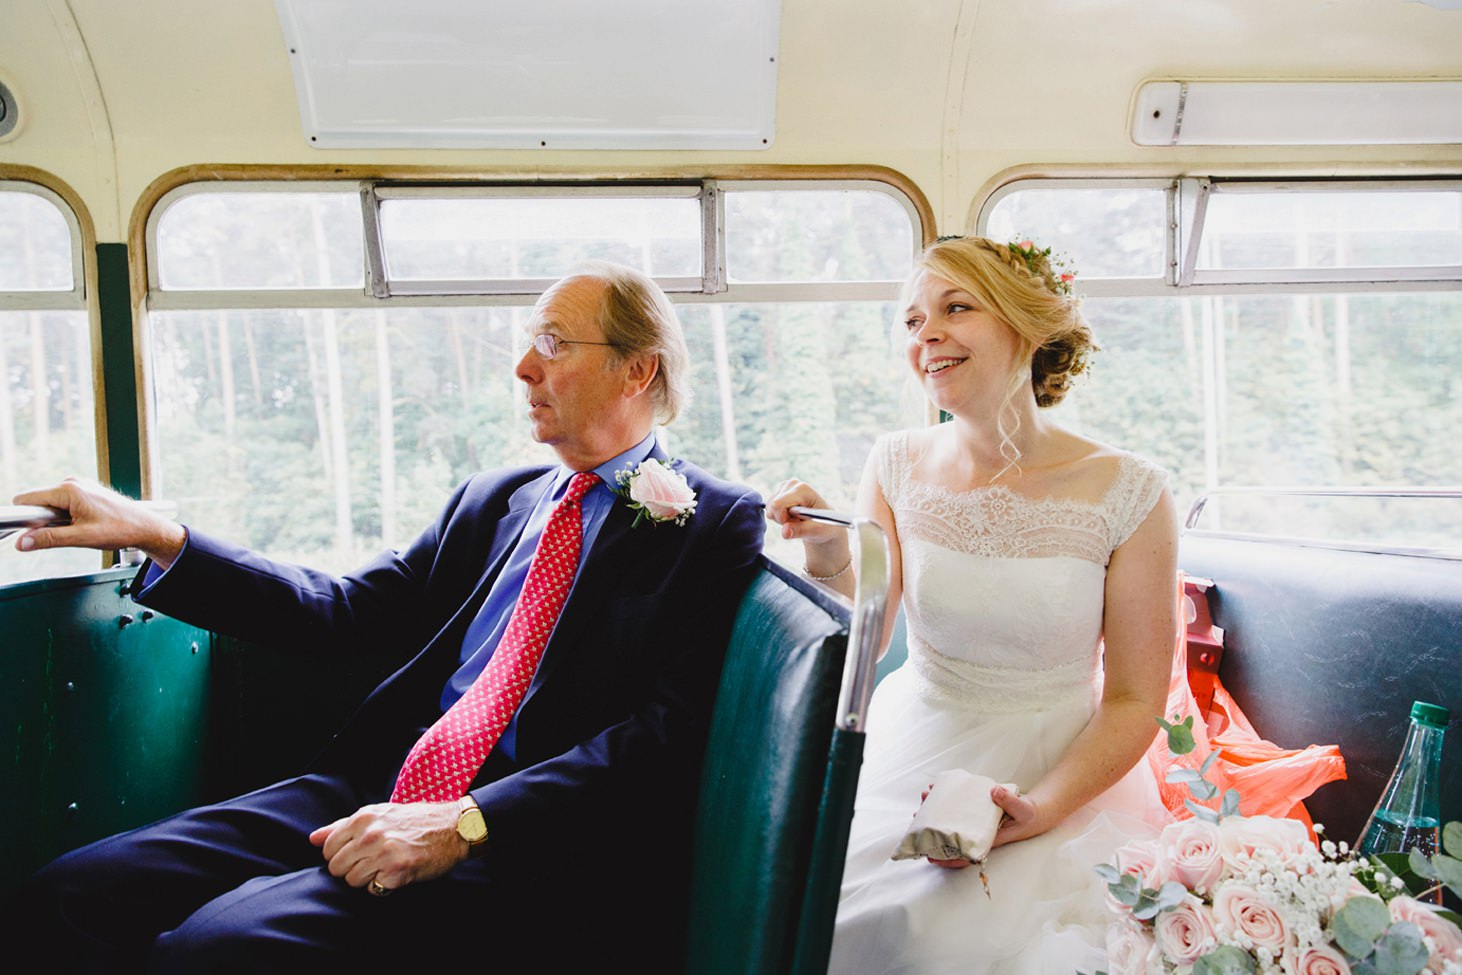 Bodleian library wedding bride and her father on bus